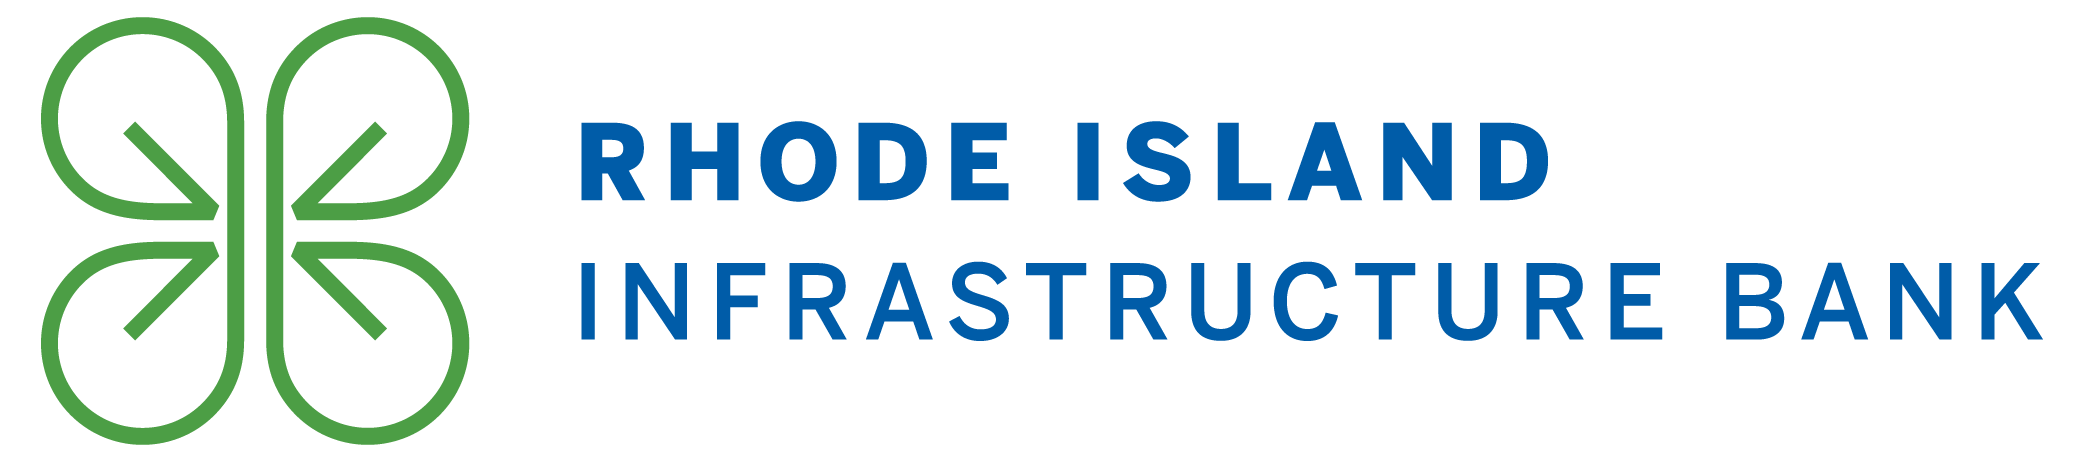 Rhode Island Infrastructure Bank - Official Seal or Logo